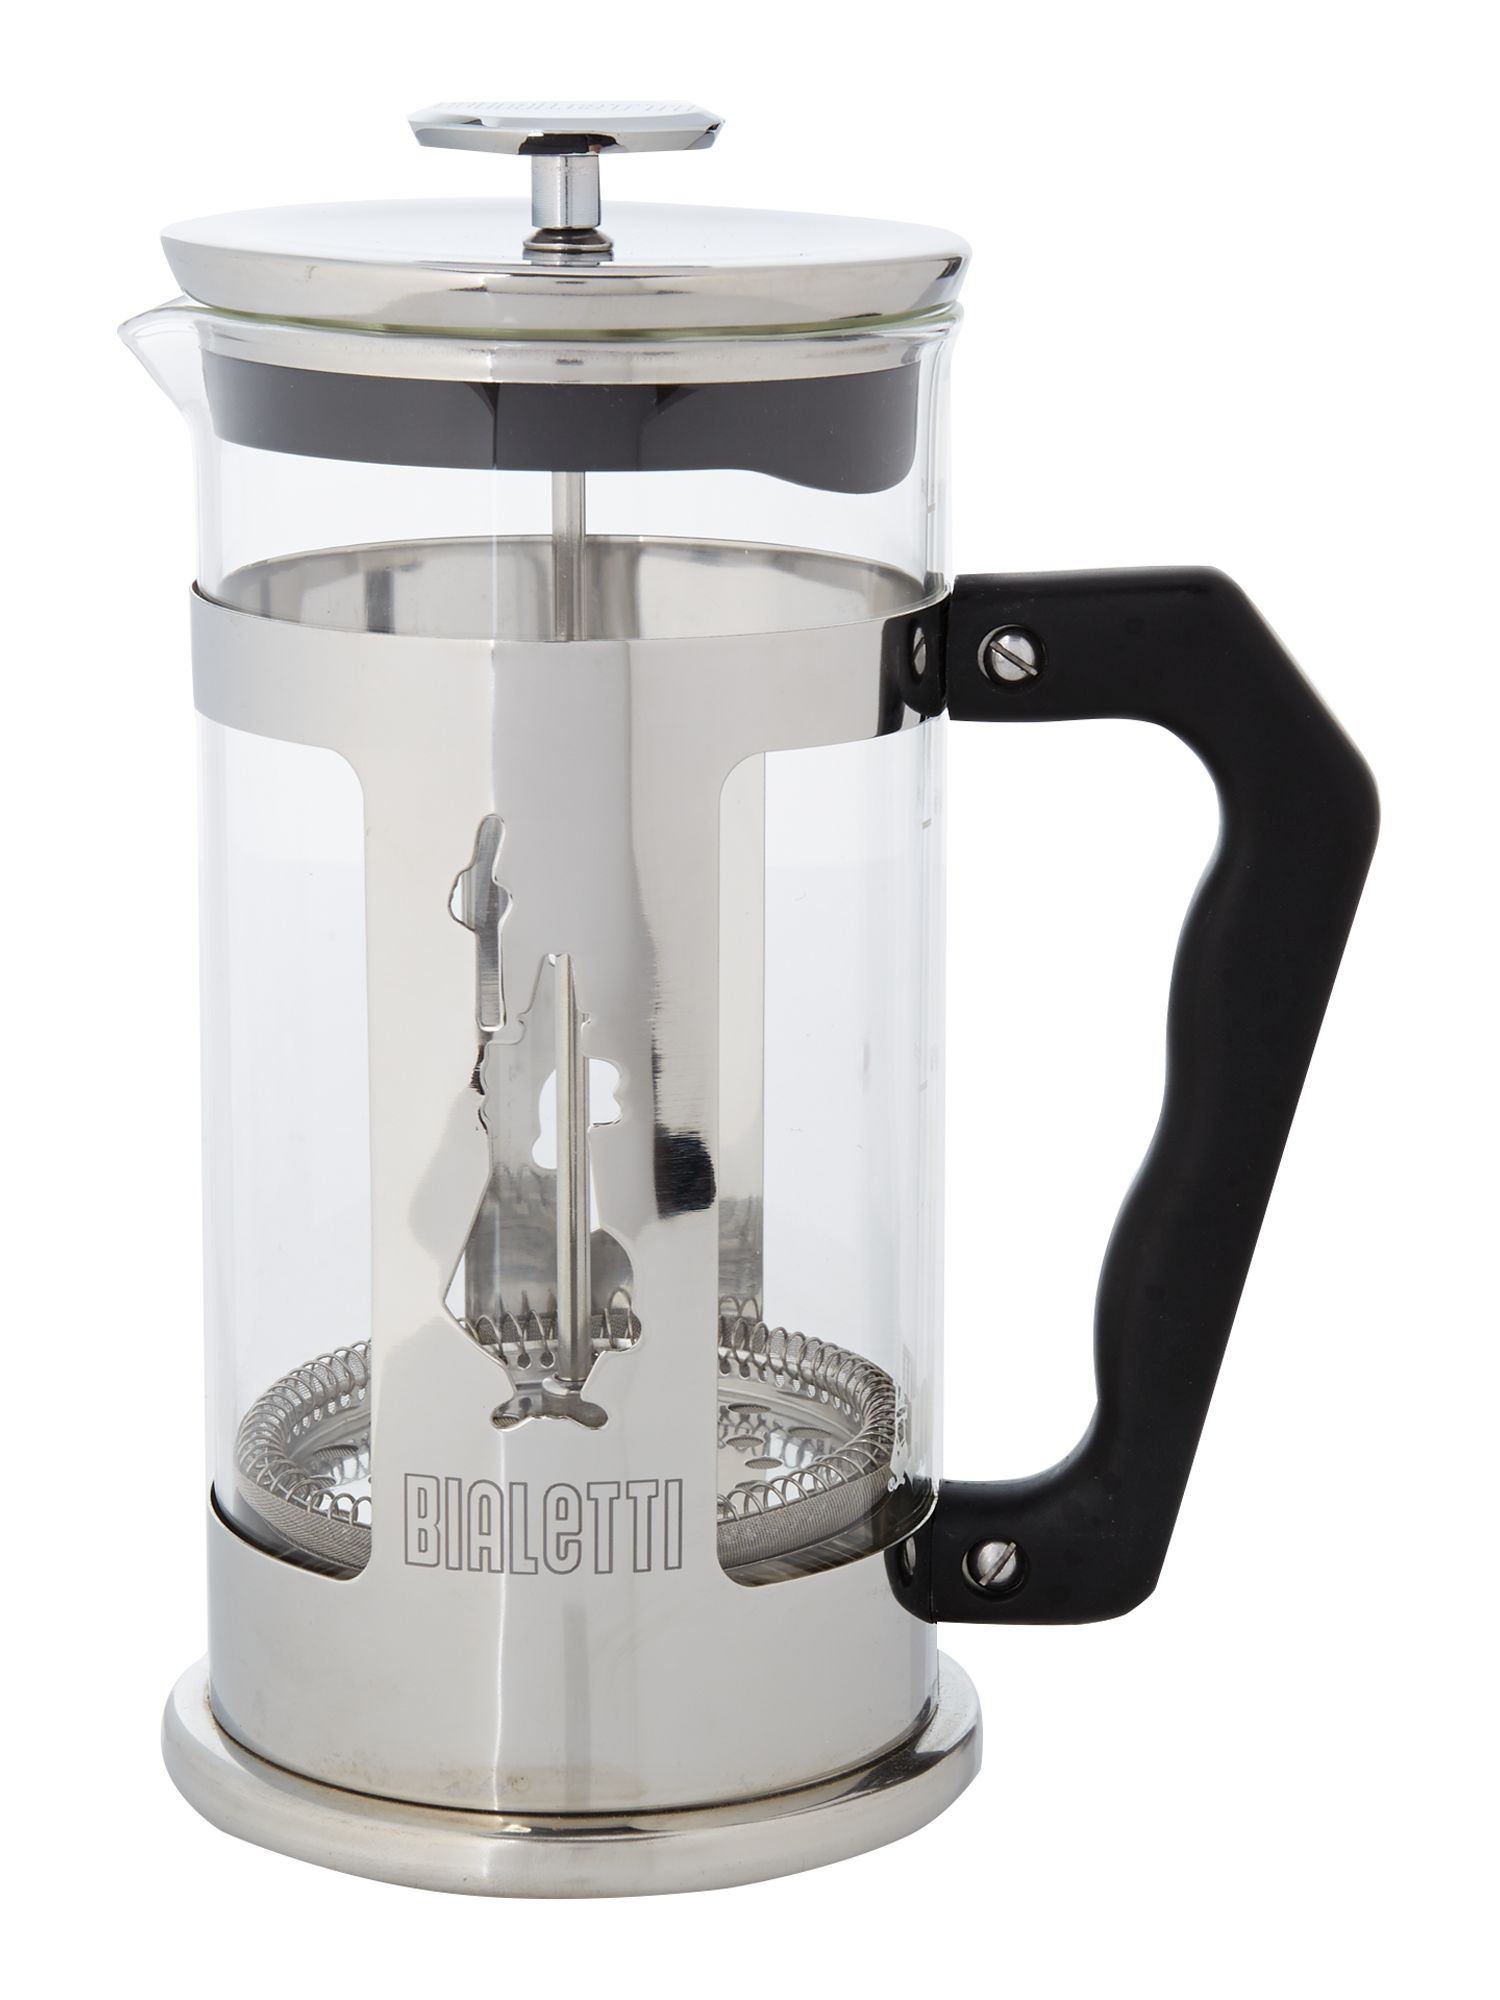 Bialetti Coffee Maker John Lewis : Buy cheap Bialetti cup - compare Cookware & Utensils prices for best UK deals